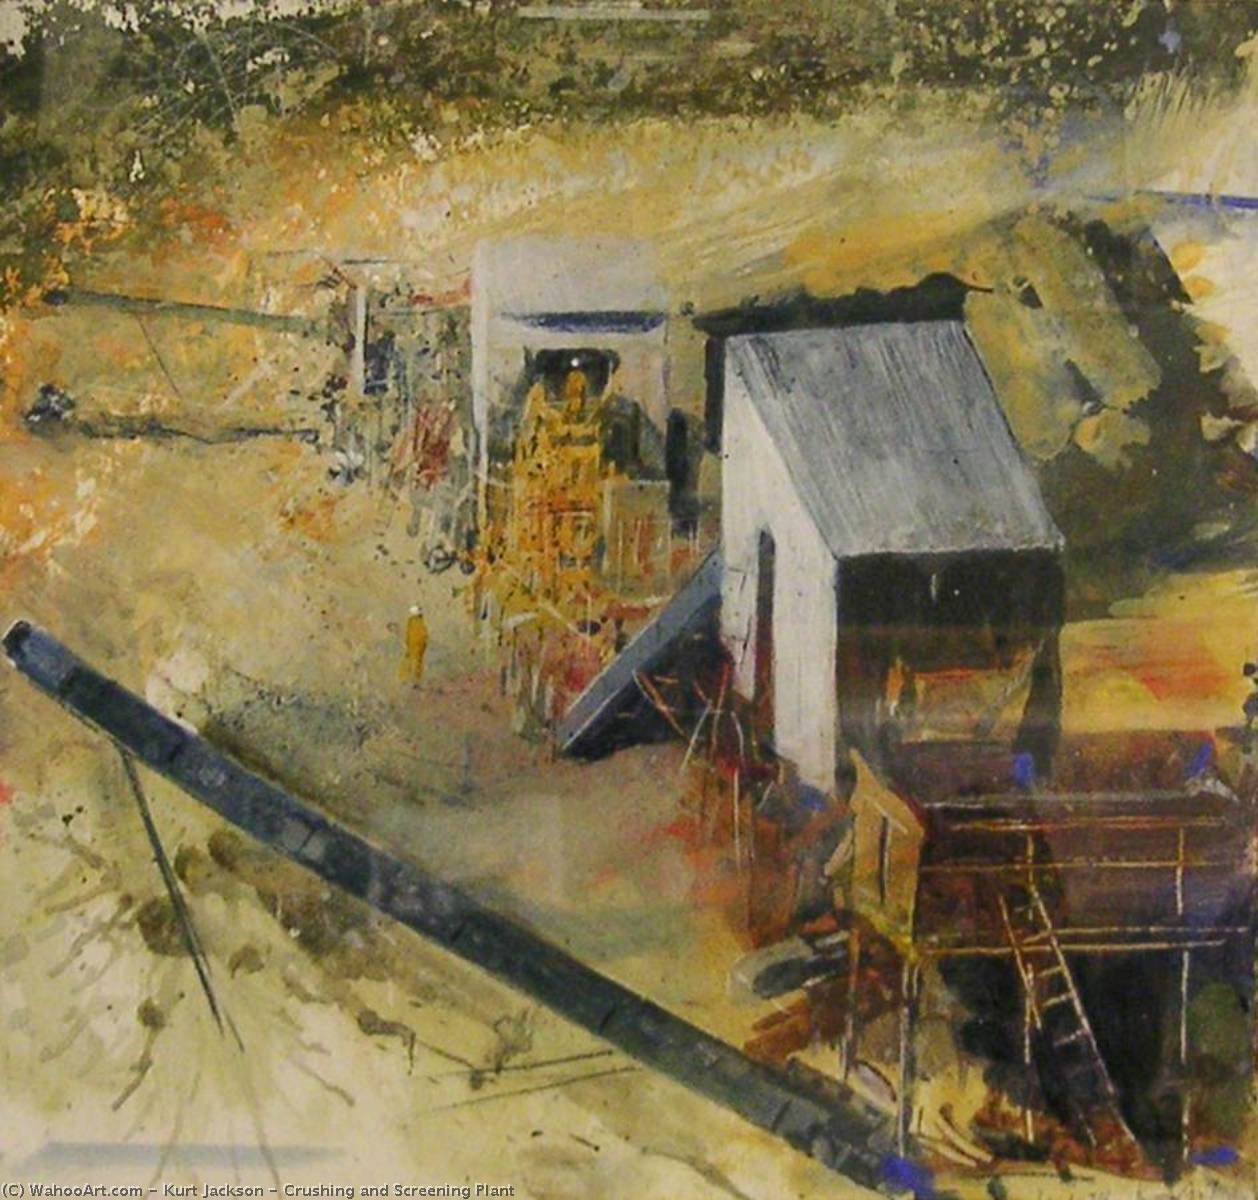 Crushing and Screening Plant, 1998 by Kurt Jackson | Oil Painting | WahooArt.com